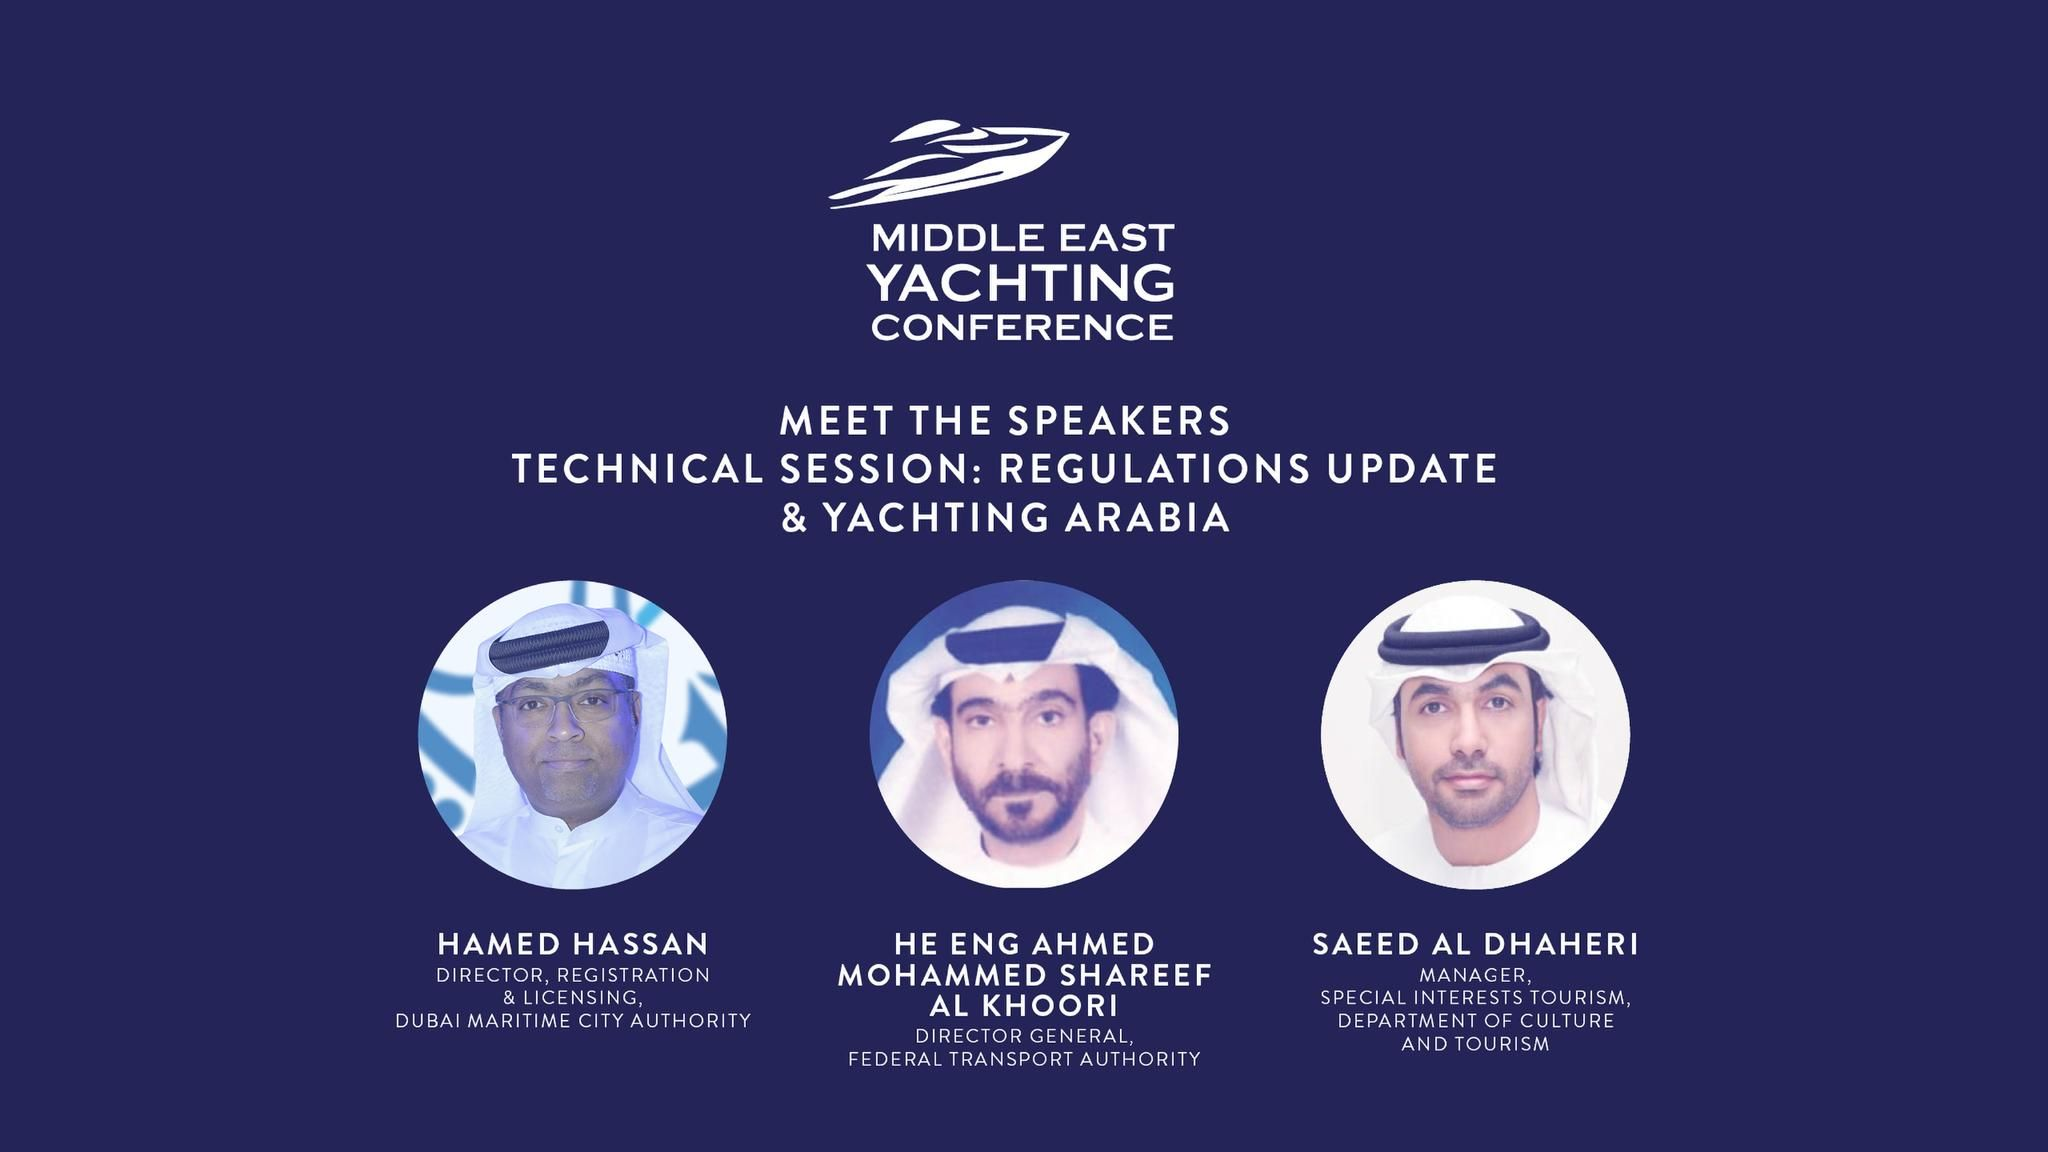 Middle East Yachting Conference